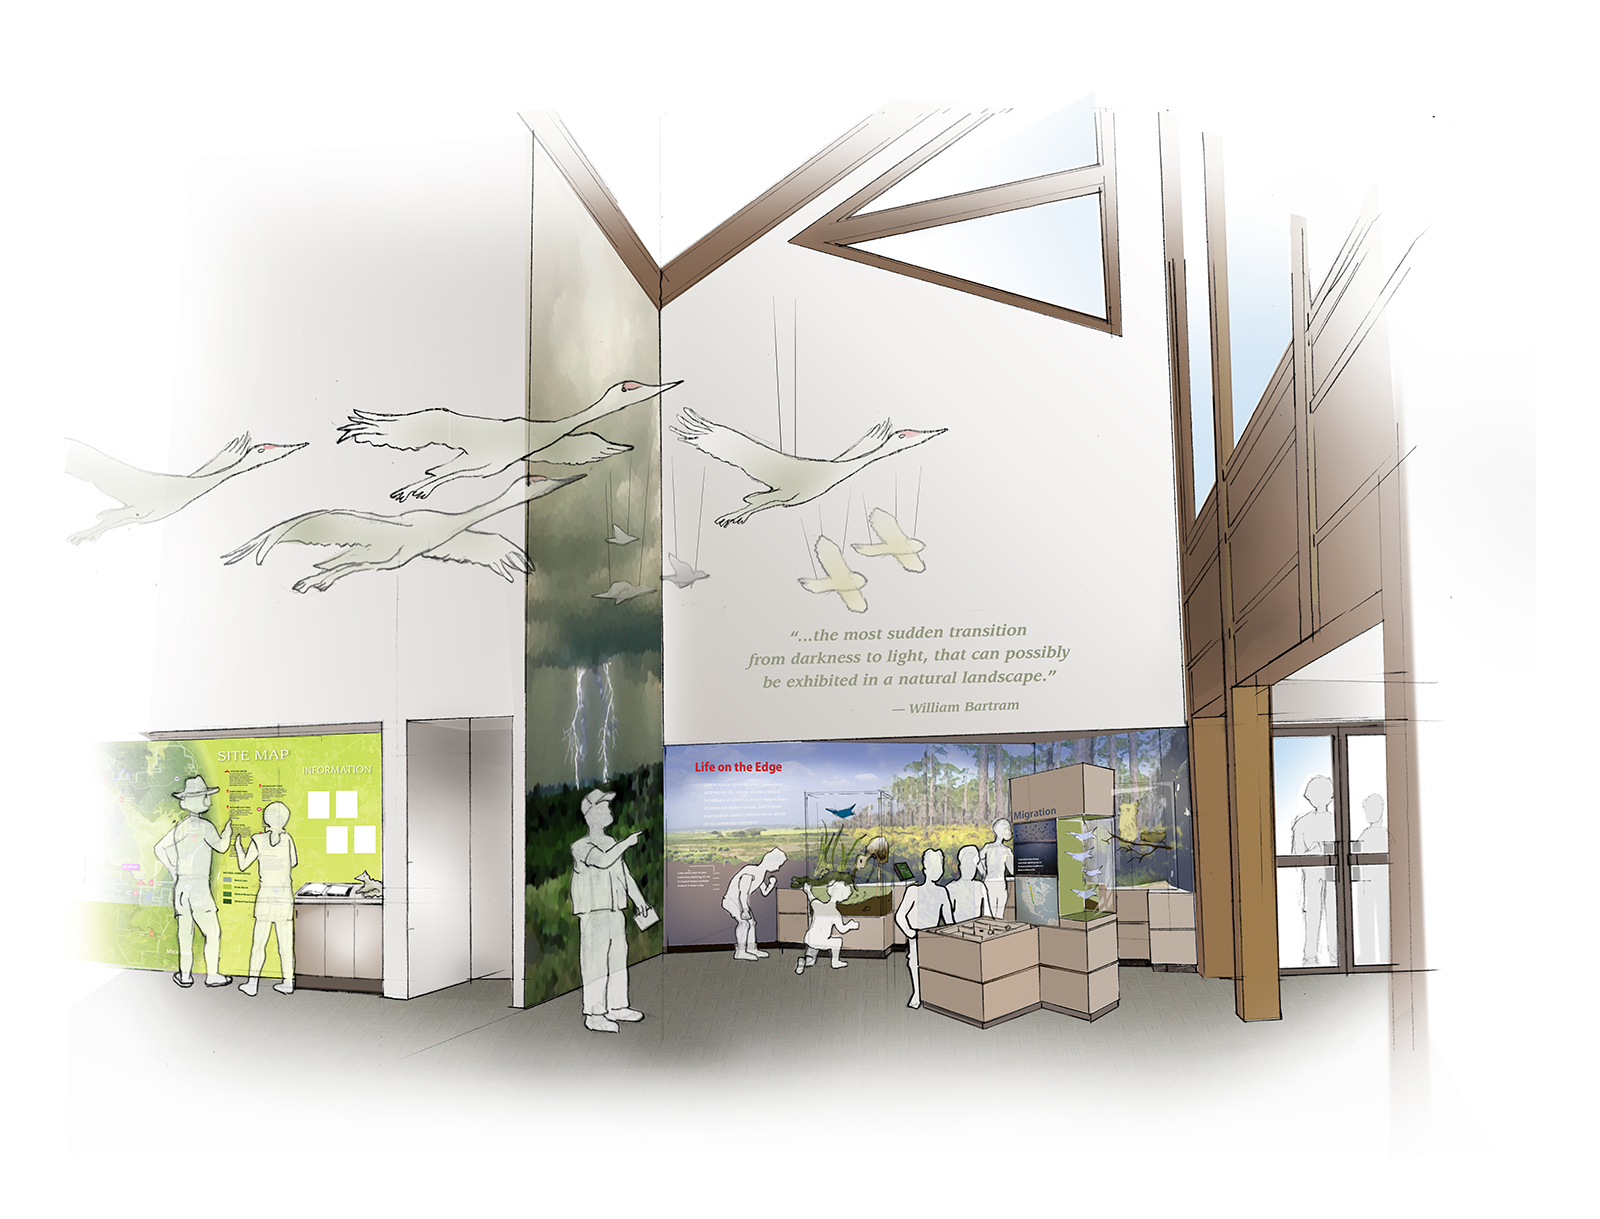 Exhibits - Florida Department of Parks and Recreation to transform their crown jewel visitor center, Paynes Prairie Preserve